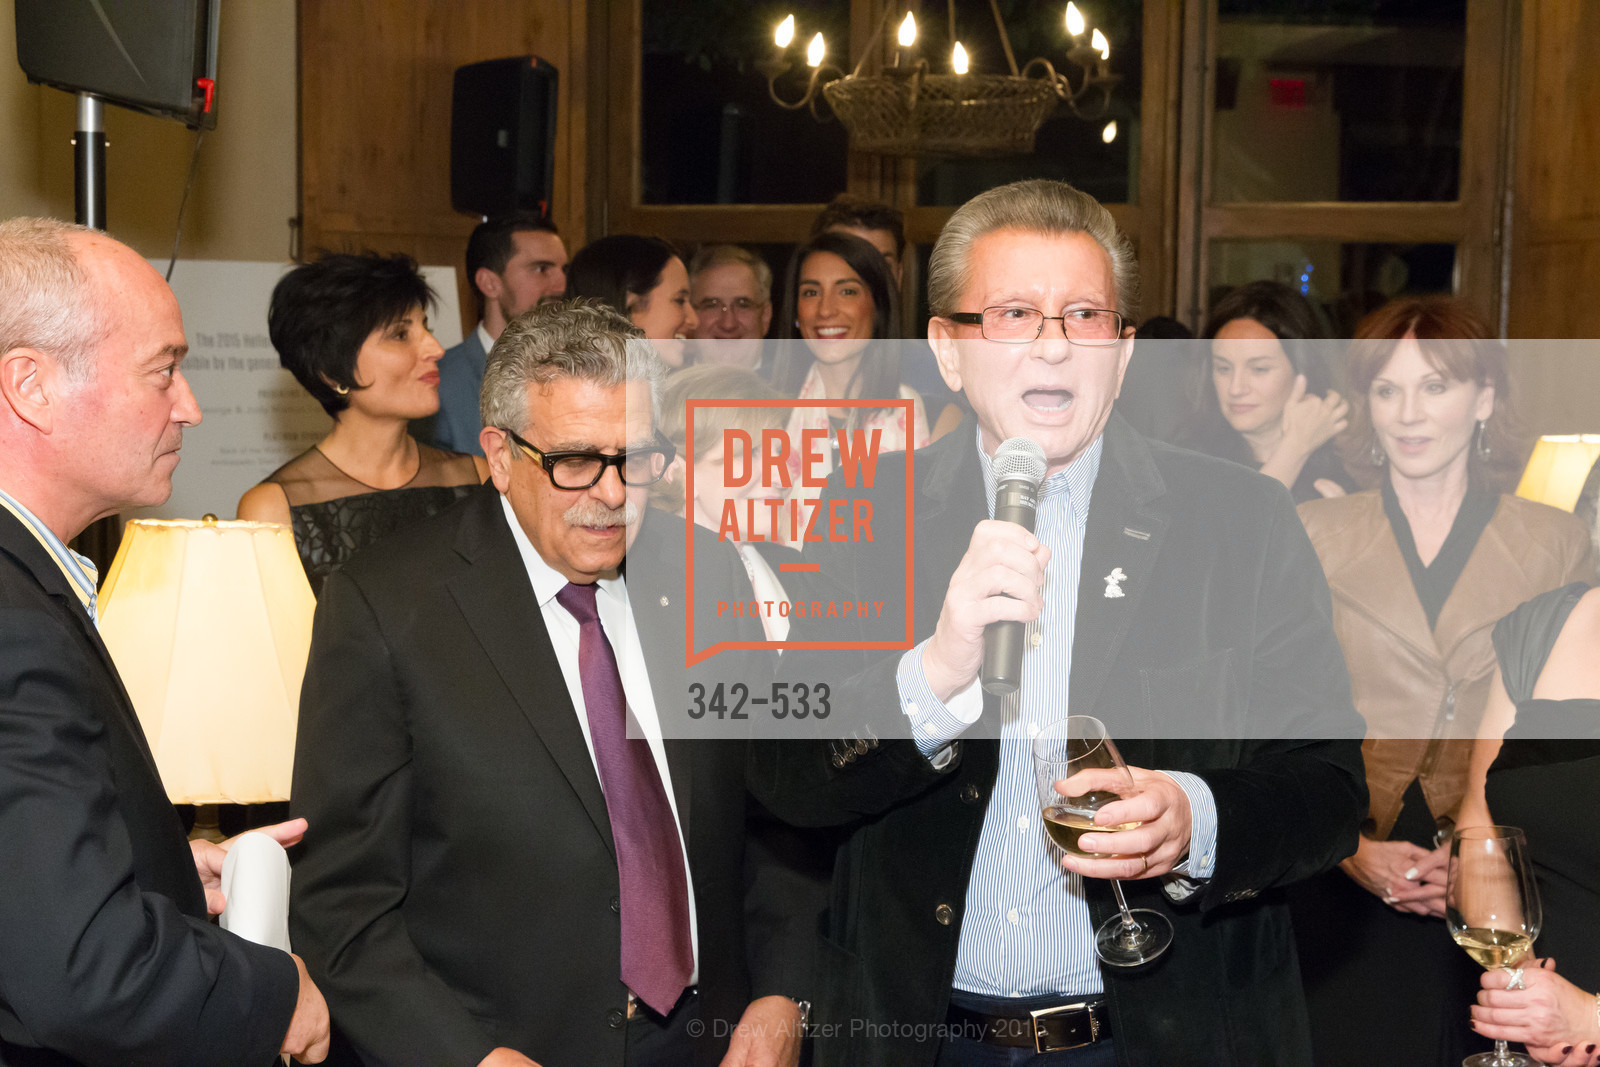 Ken Frangadakis, George Marcus, Hellenic Charity Ball Cocktail Reception, Kokkari. 200 Jackson St, San Francisco, CA 94111, November 13th, 2015,Drew Altizer, Drew Altizer Photography, full-service agency, private events, San Francisco photographer, photographer california